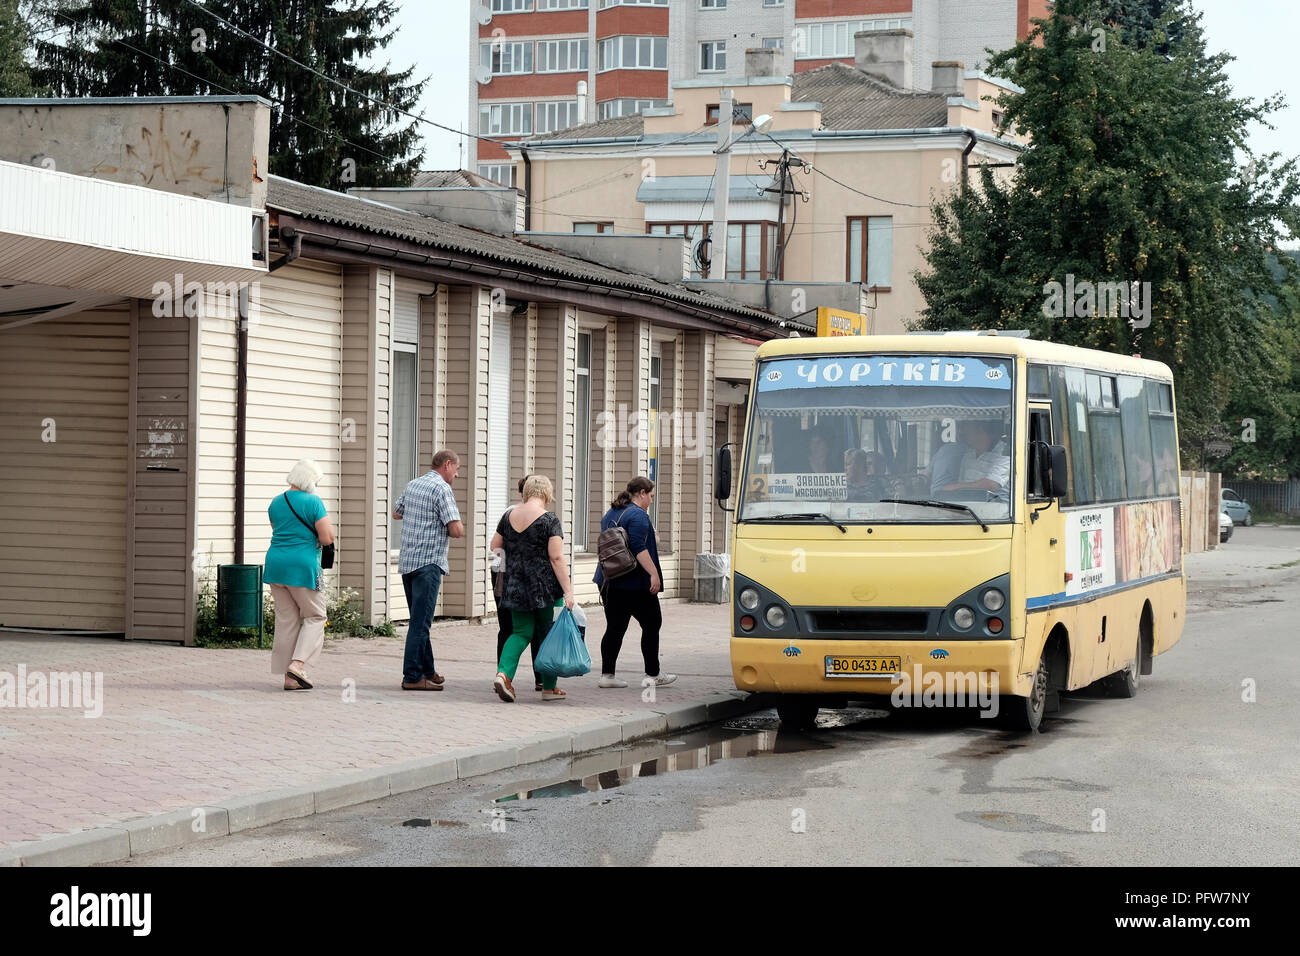 Street scene in the city of Chortkiv which was once home to a large Jewish community and was annihilated, brutally, by the Germans during the Second World War in Ternopil Oblast (province) in western Ukraine. - Stock Image